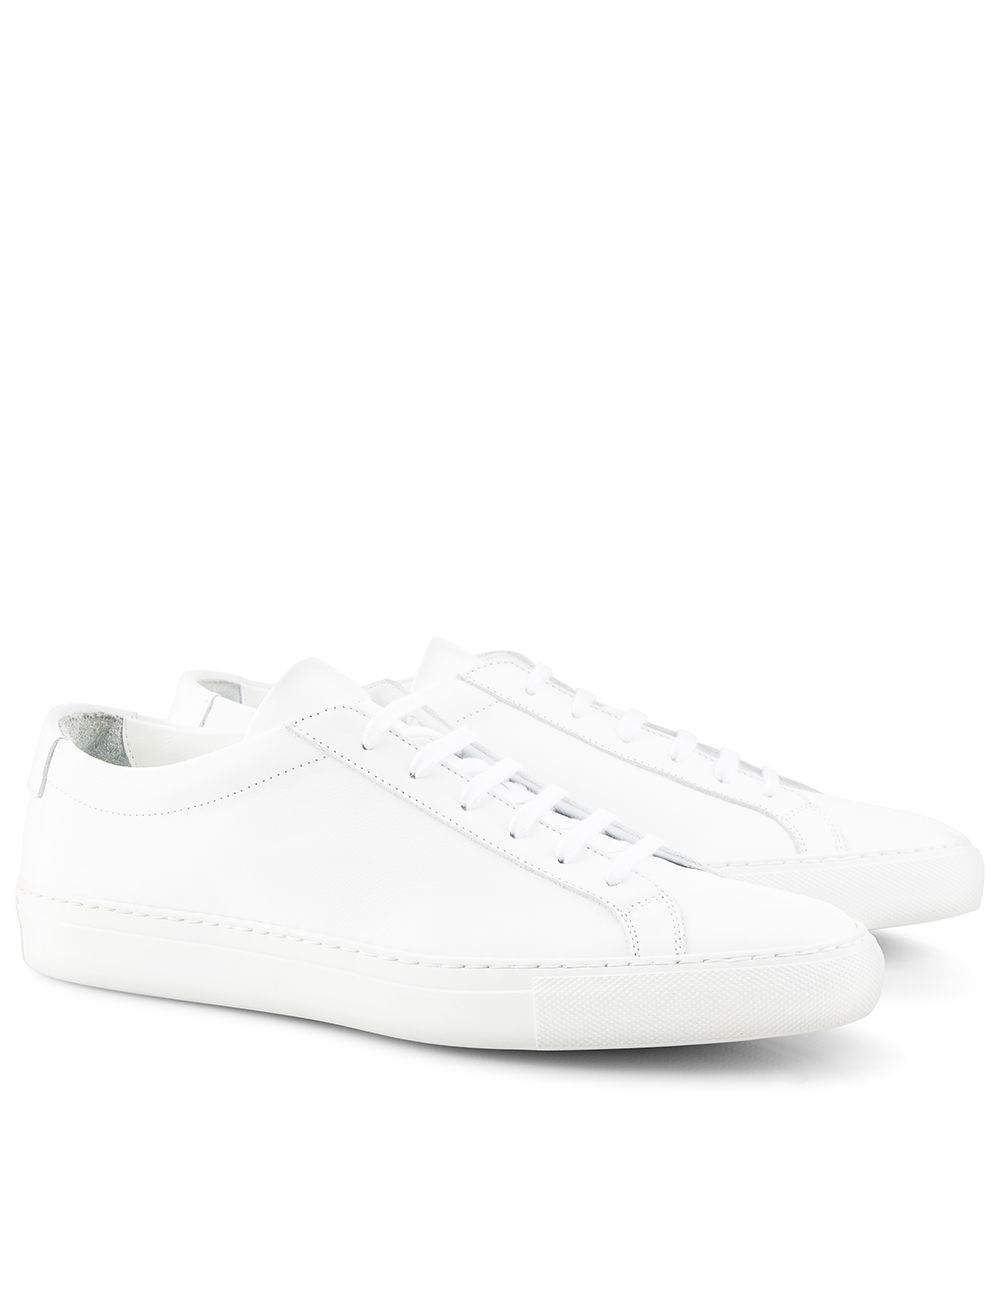 common projects white leather low top achilles trainers in white lyst. Black Bedroom Furniture Sets. Home Design Ideas